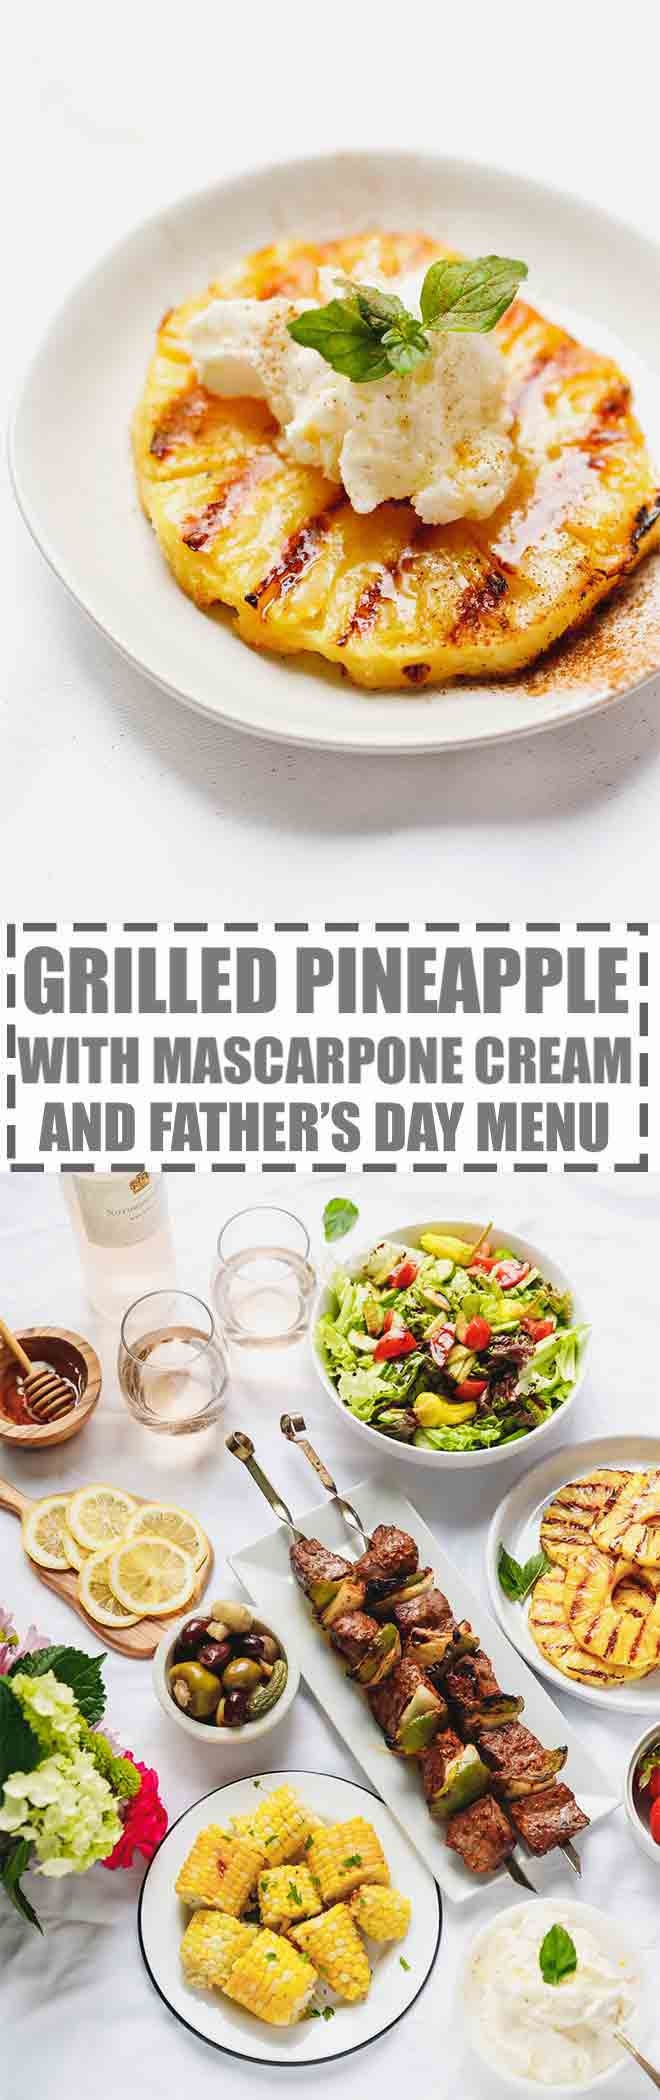 Grilled Pineapple Recipe And Father's Day Menu - simple and delicious grilling season dessert, made with just five ingredients. Easy Father's Day meal ideas and a trip to The Fresh Market. #GRILLEDPINEAPPLE #AD #TheFreshMarket, #TFMGetGrilling